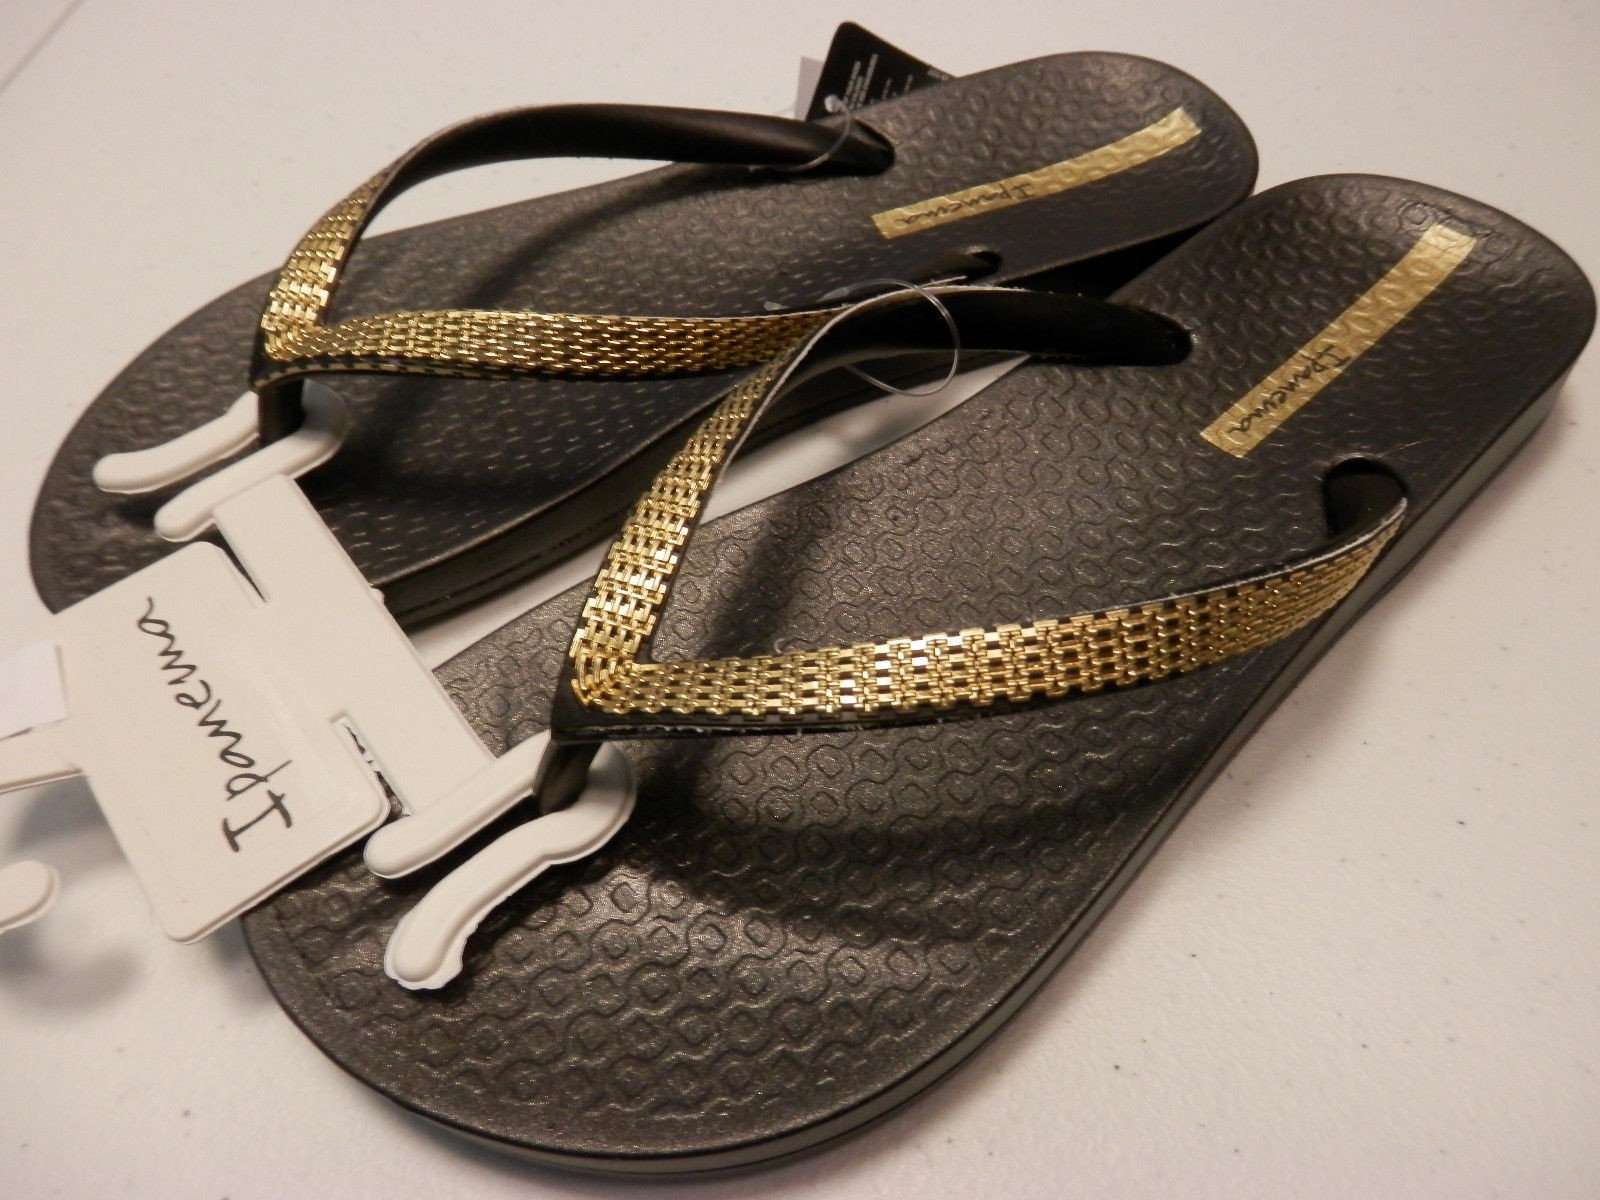 651aed3d54f8 Ipanema Ana Metallic Flip Flops in Black and Gold